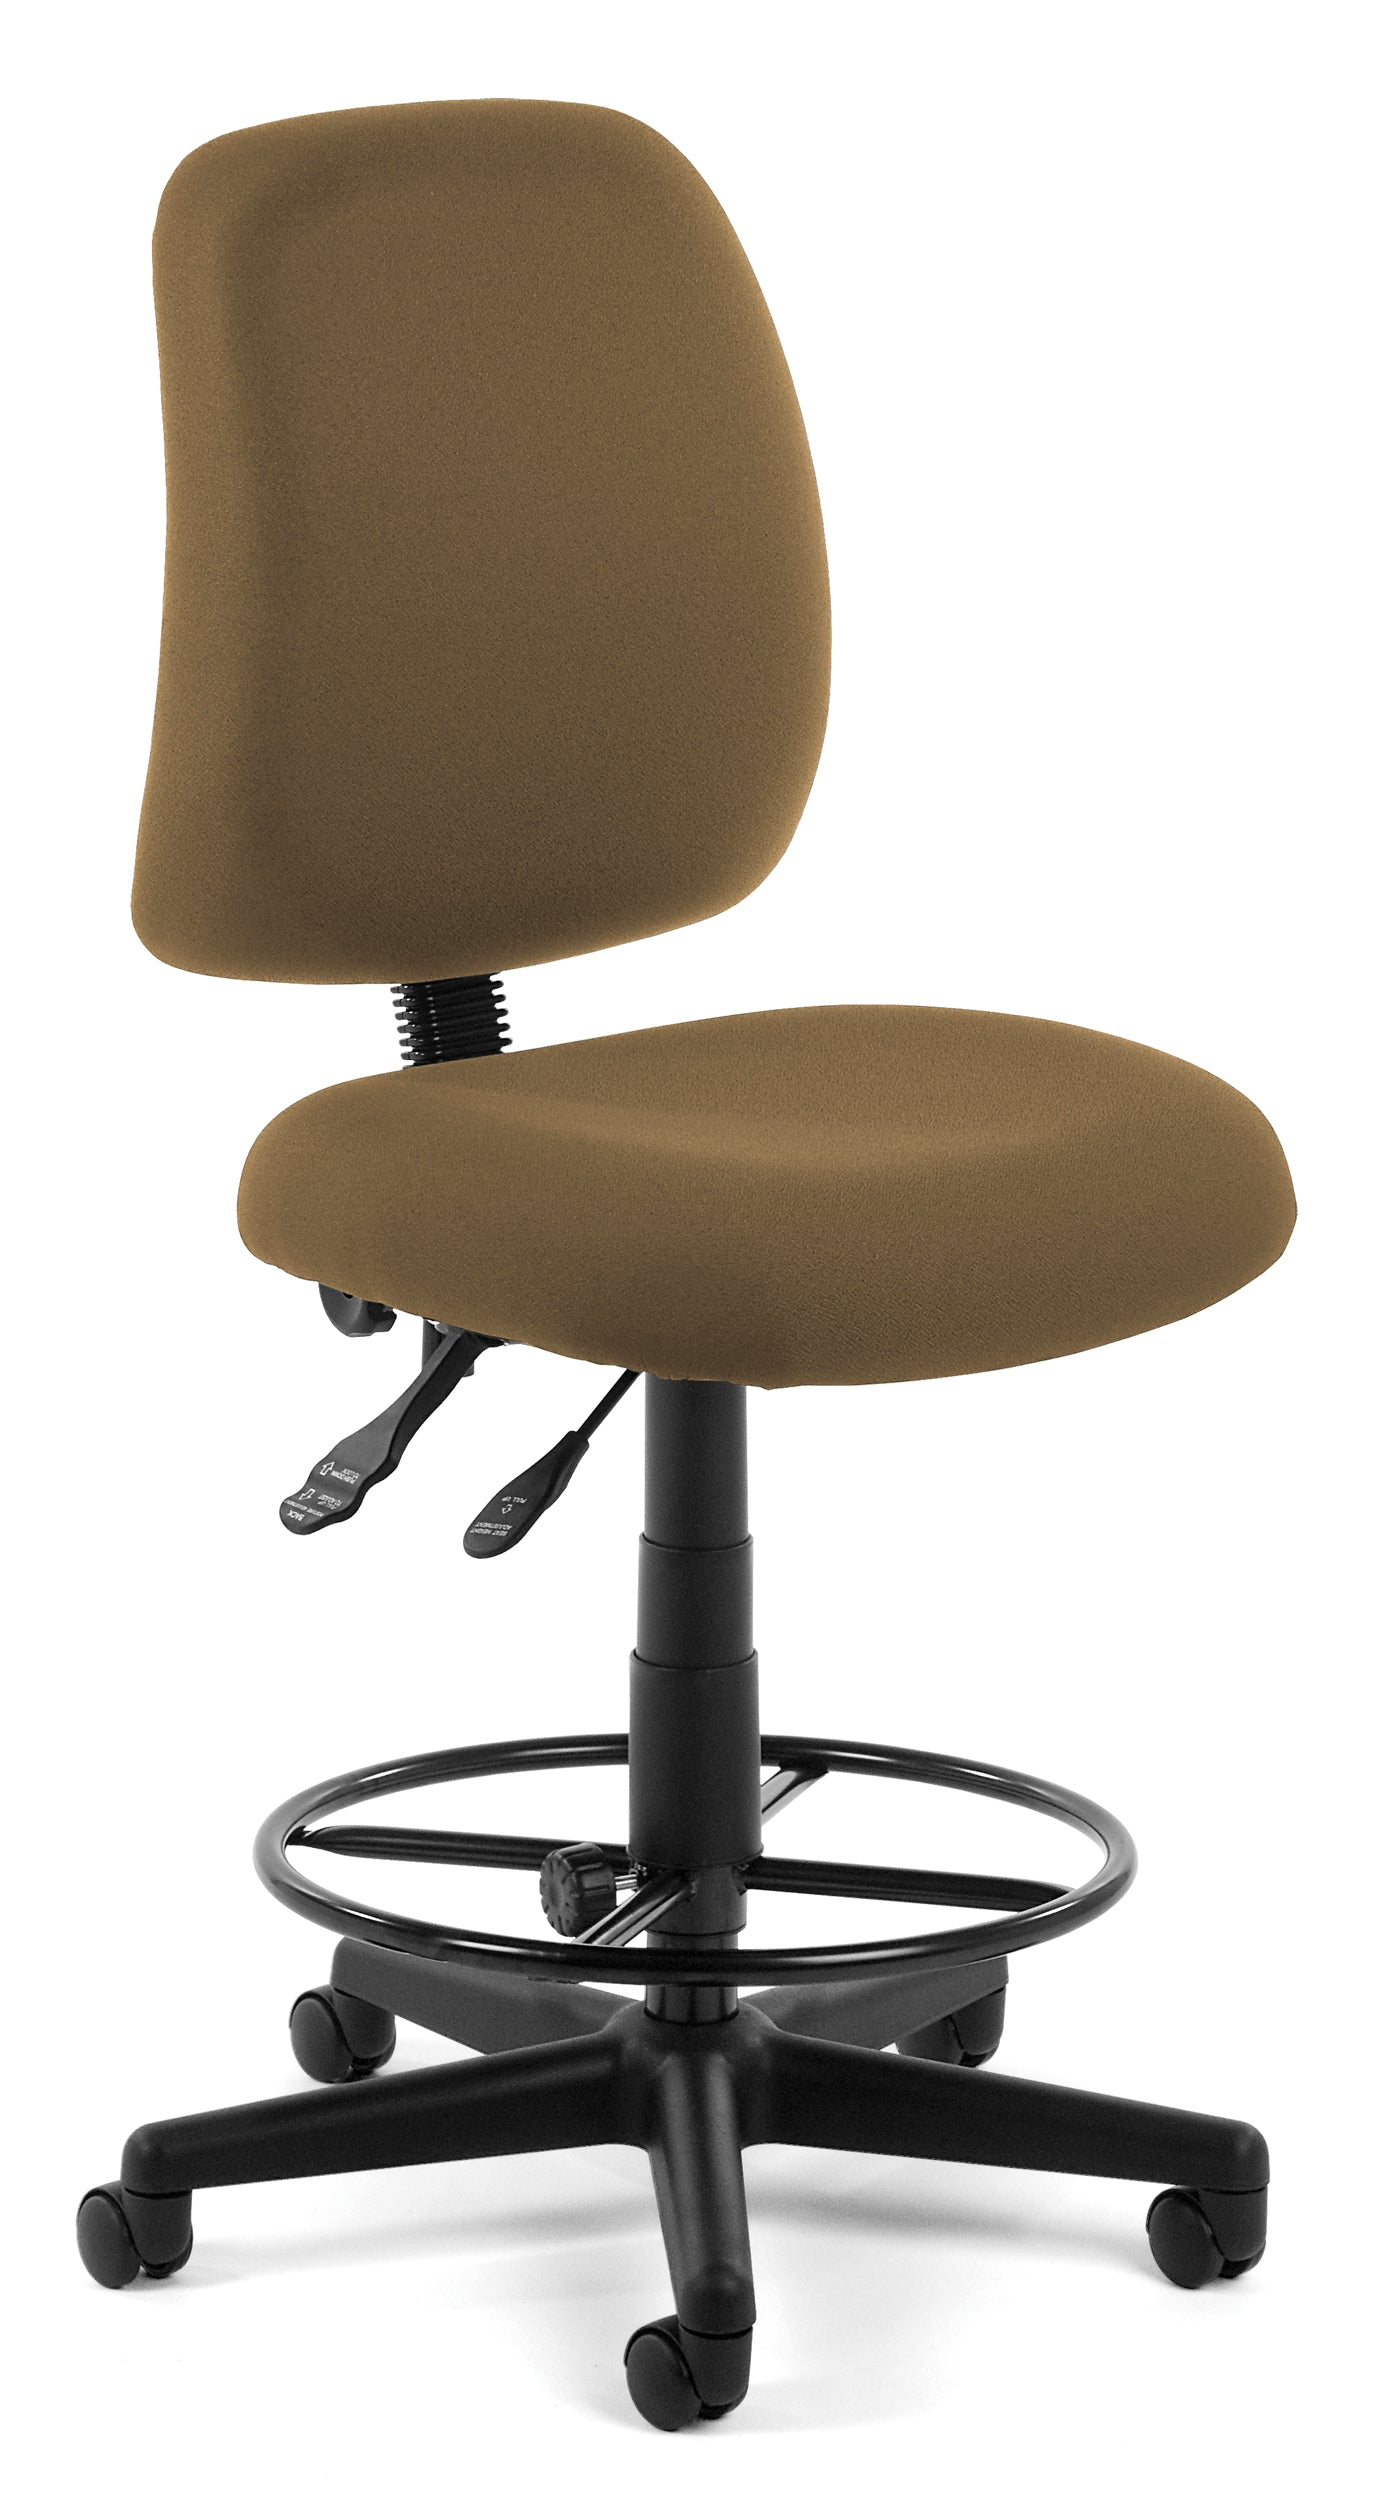 118-2-DK Posture Series Armless Fabric Swivel Drafting Kit Task Chair